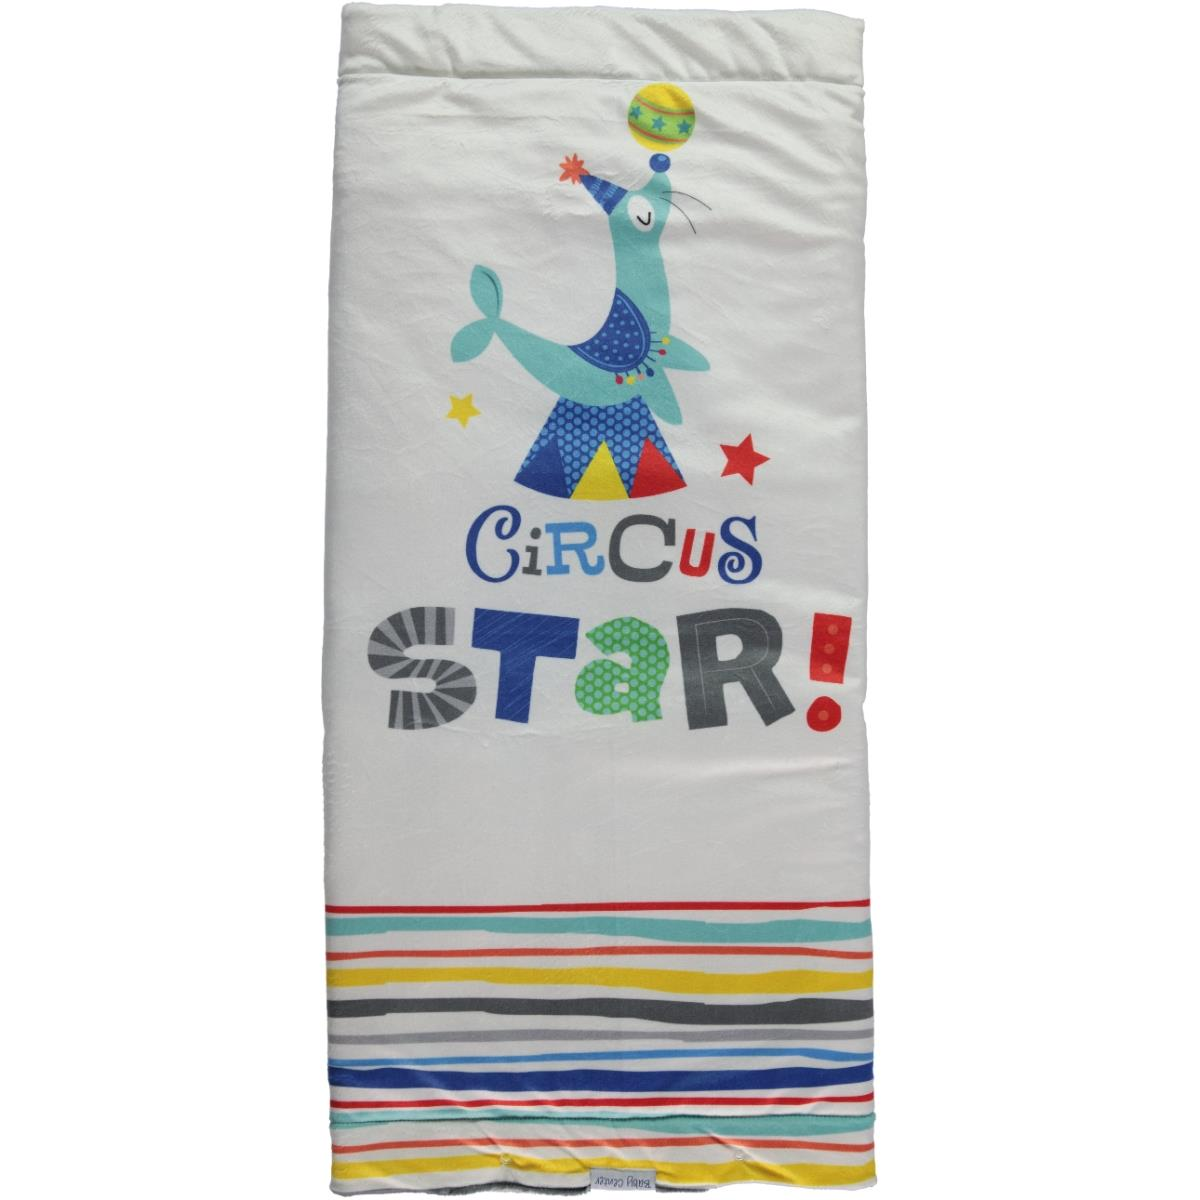 Baby Center Baby Blanket Circus Indigo